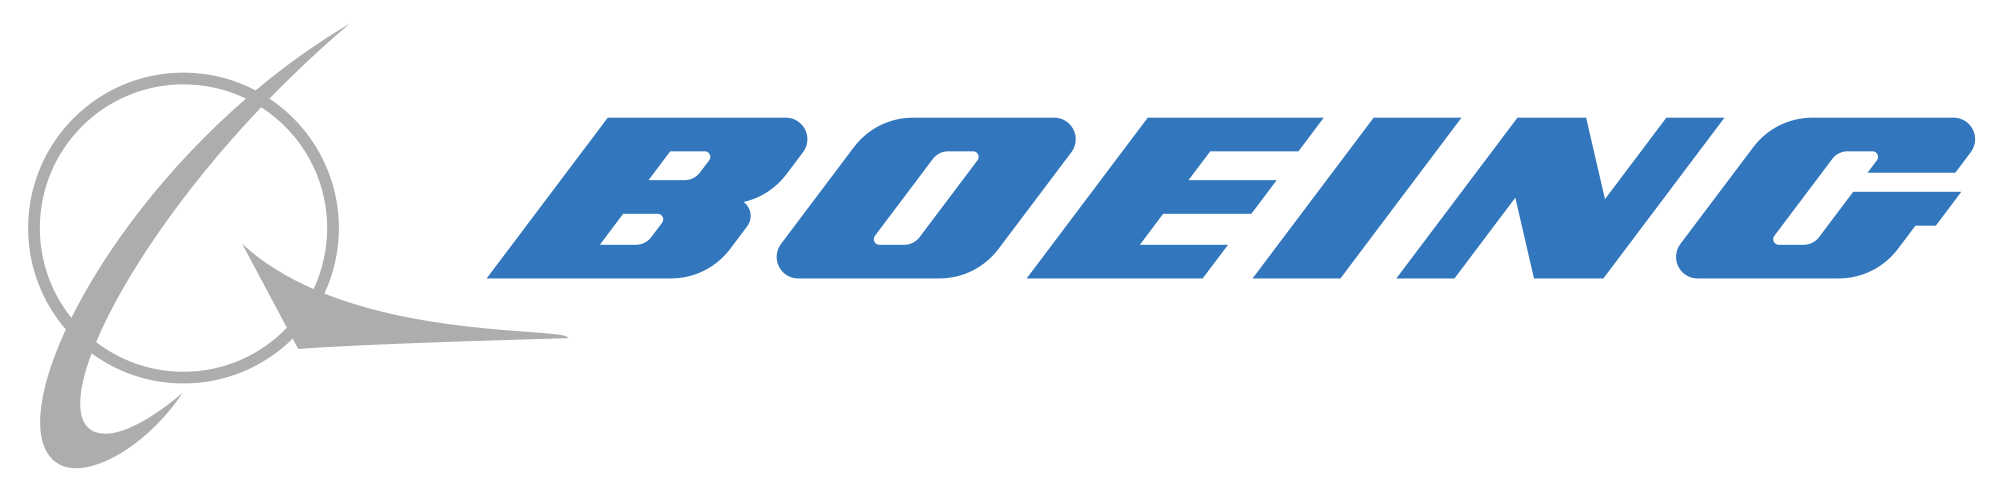 Allen University received a grant from Boeing.